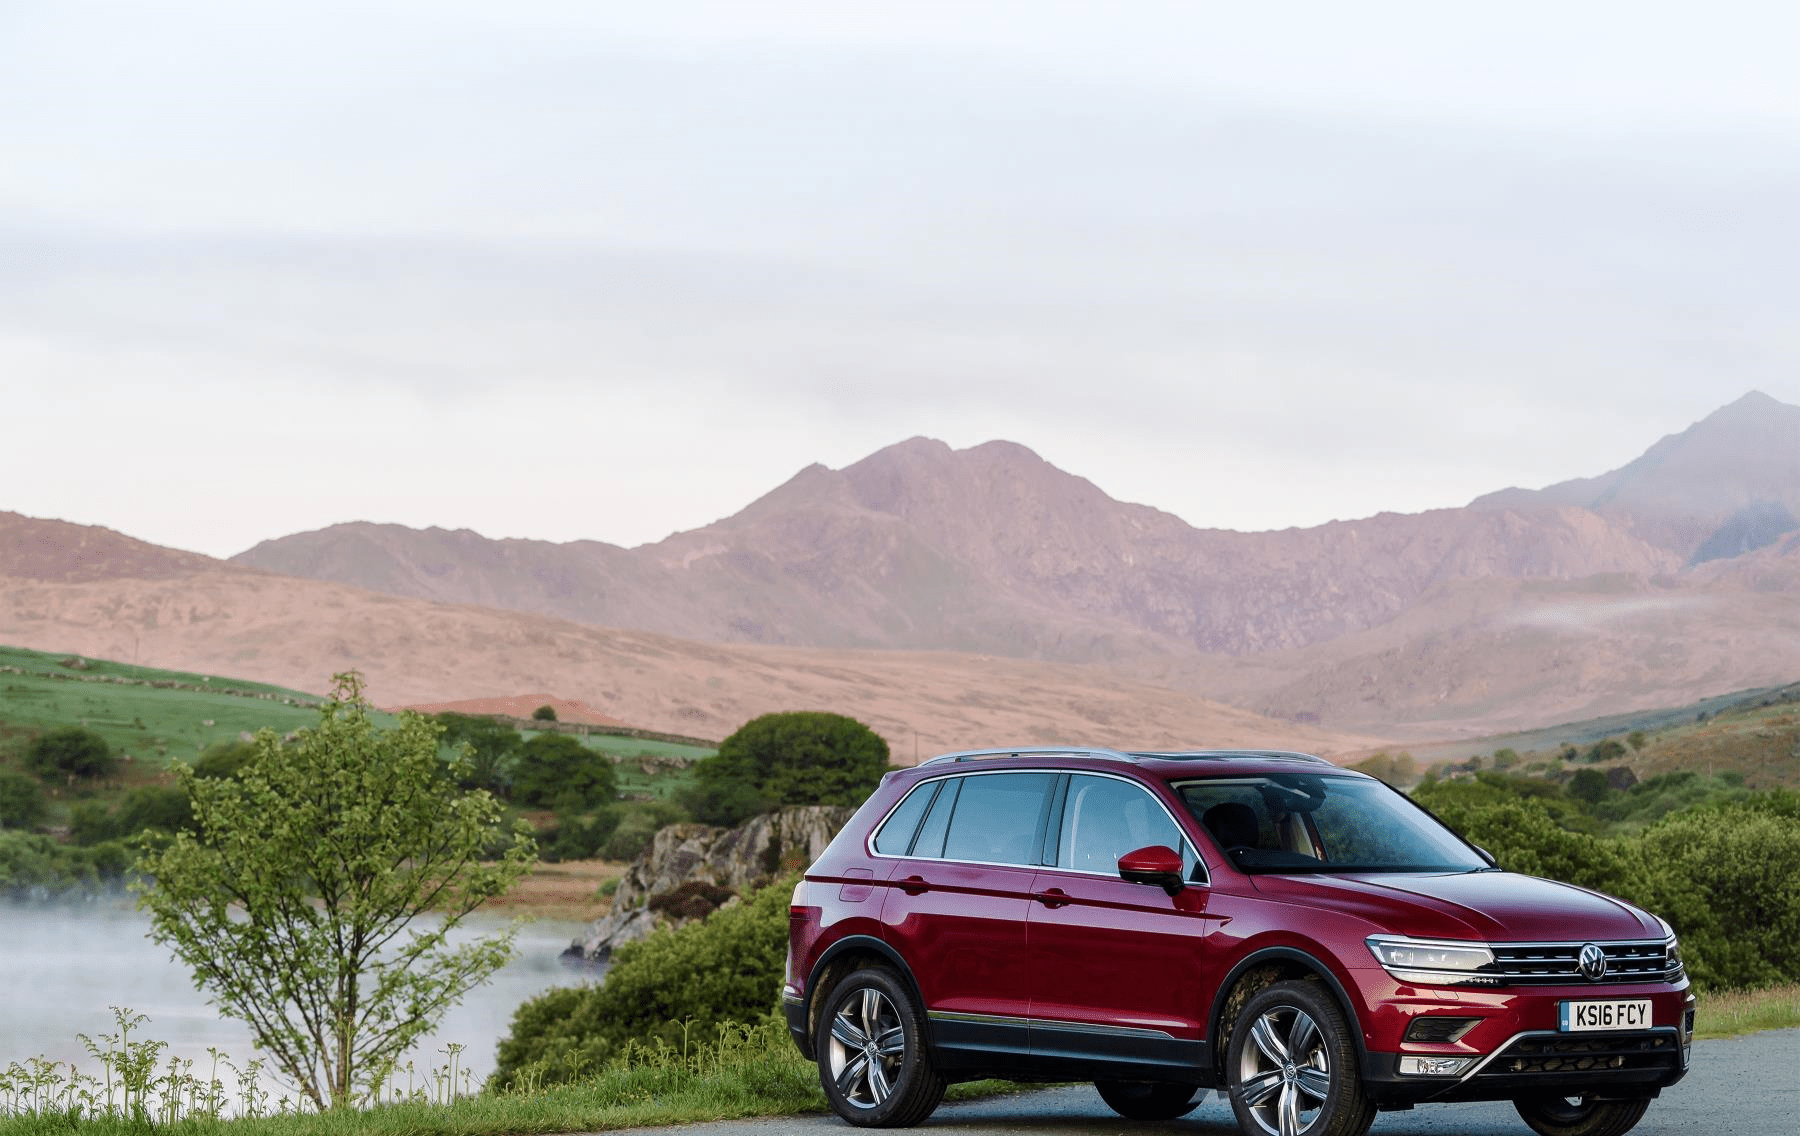 Red Volkswagen Tiguan infront of mountains